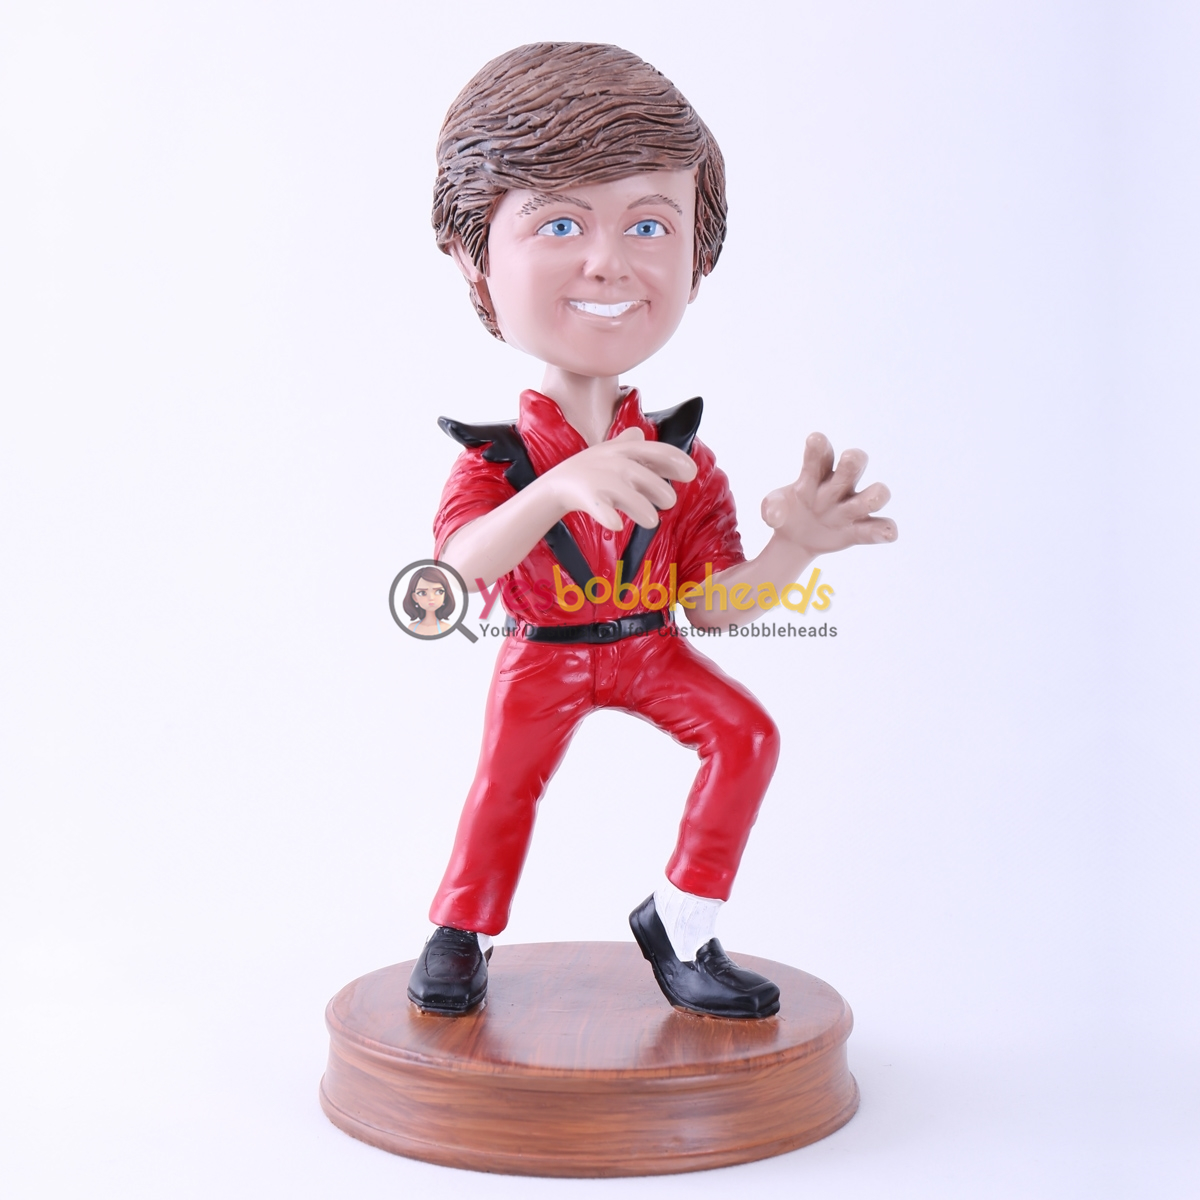 Picture of Custom Bobblehead Doll: Moonwalk Man